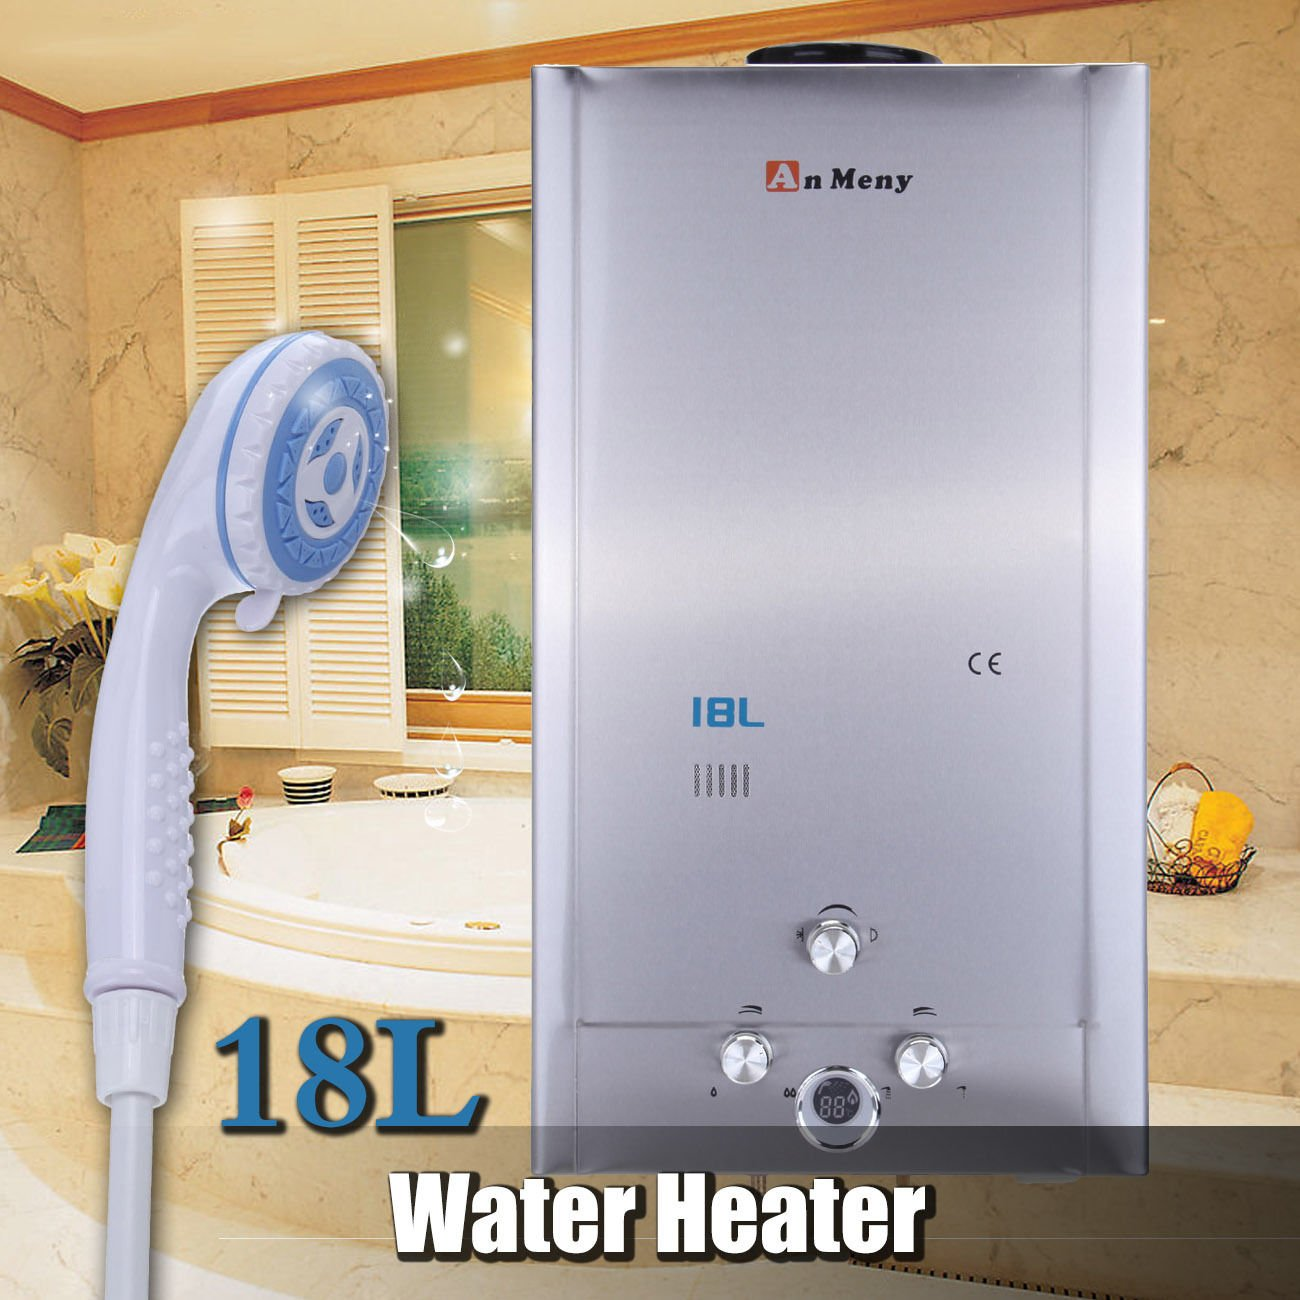 Ridgeyard Hot Water Heater 18L/ 4.75GPM LPG Propane Water Heater Gas Tankless Instant Boiler with Shower Head and LCD Display